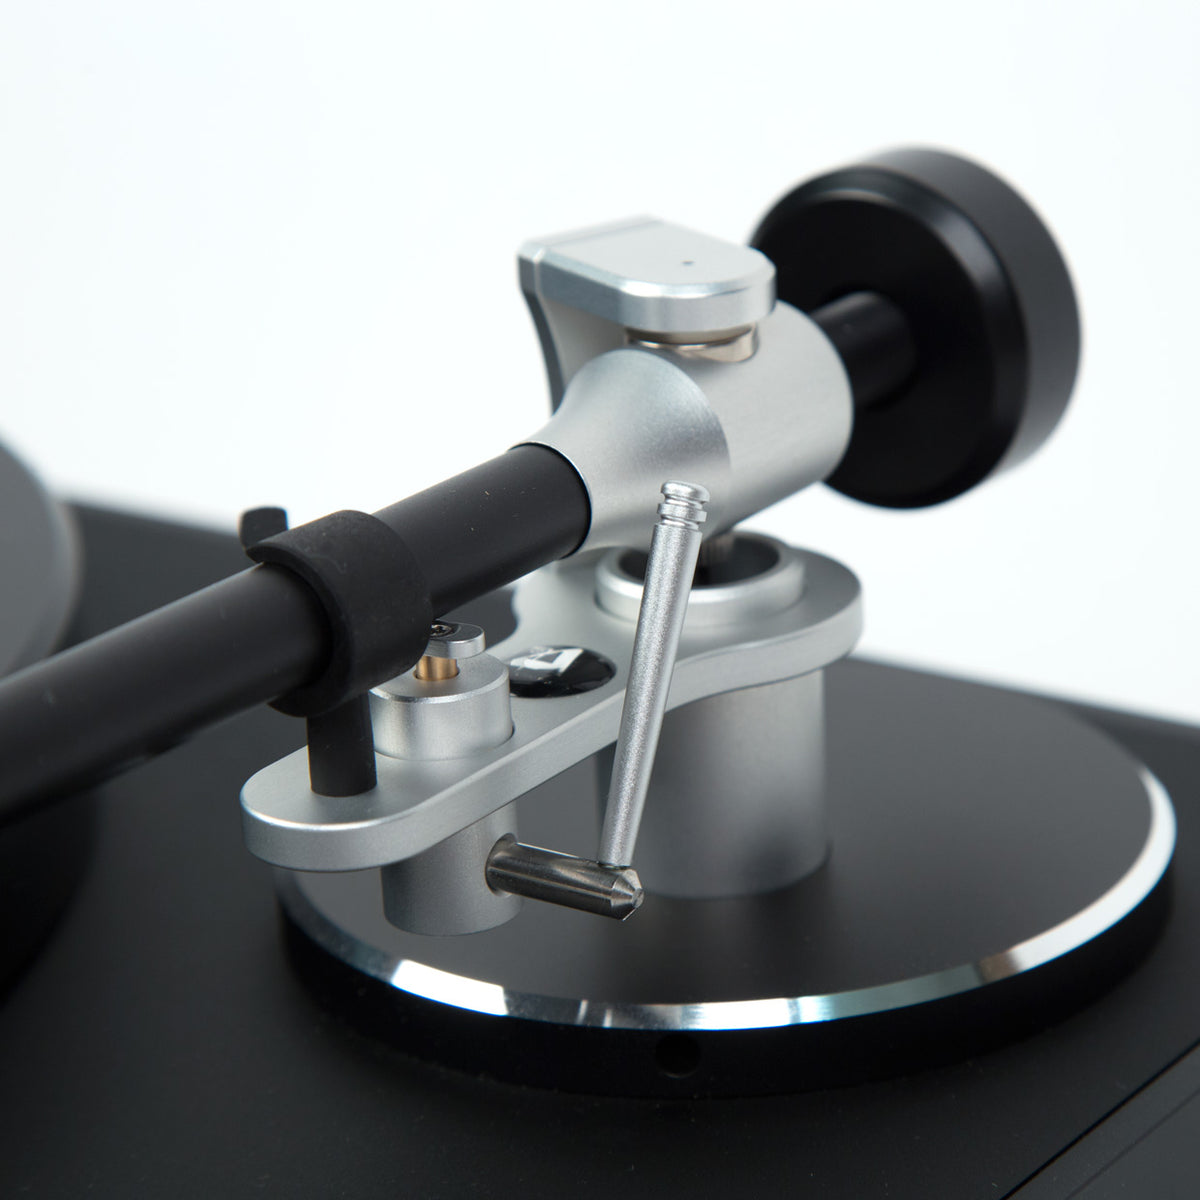 Clearaudio: Concept Black Turntable - Verify Tonearm / Concept MM Cartridge